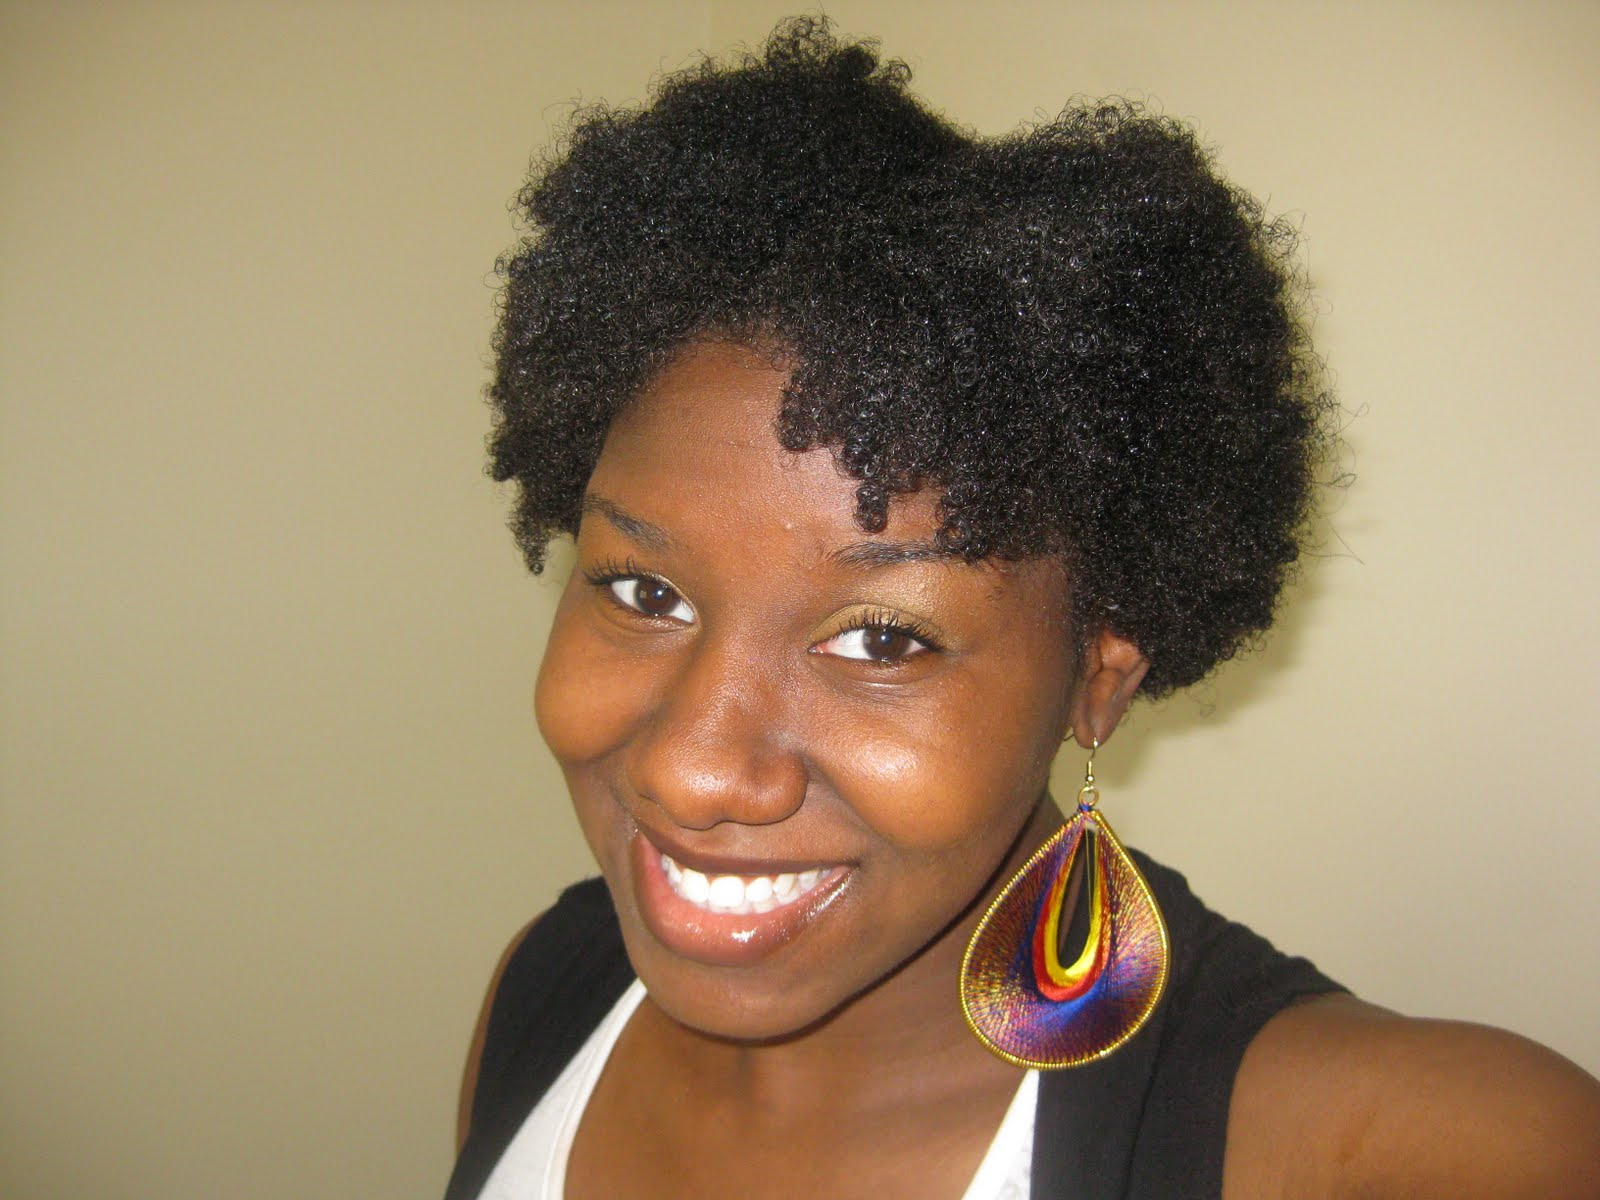 Transition to natural hair online support